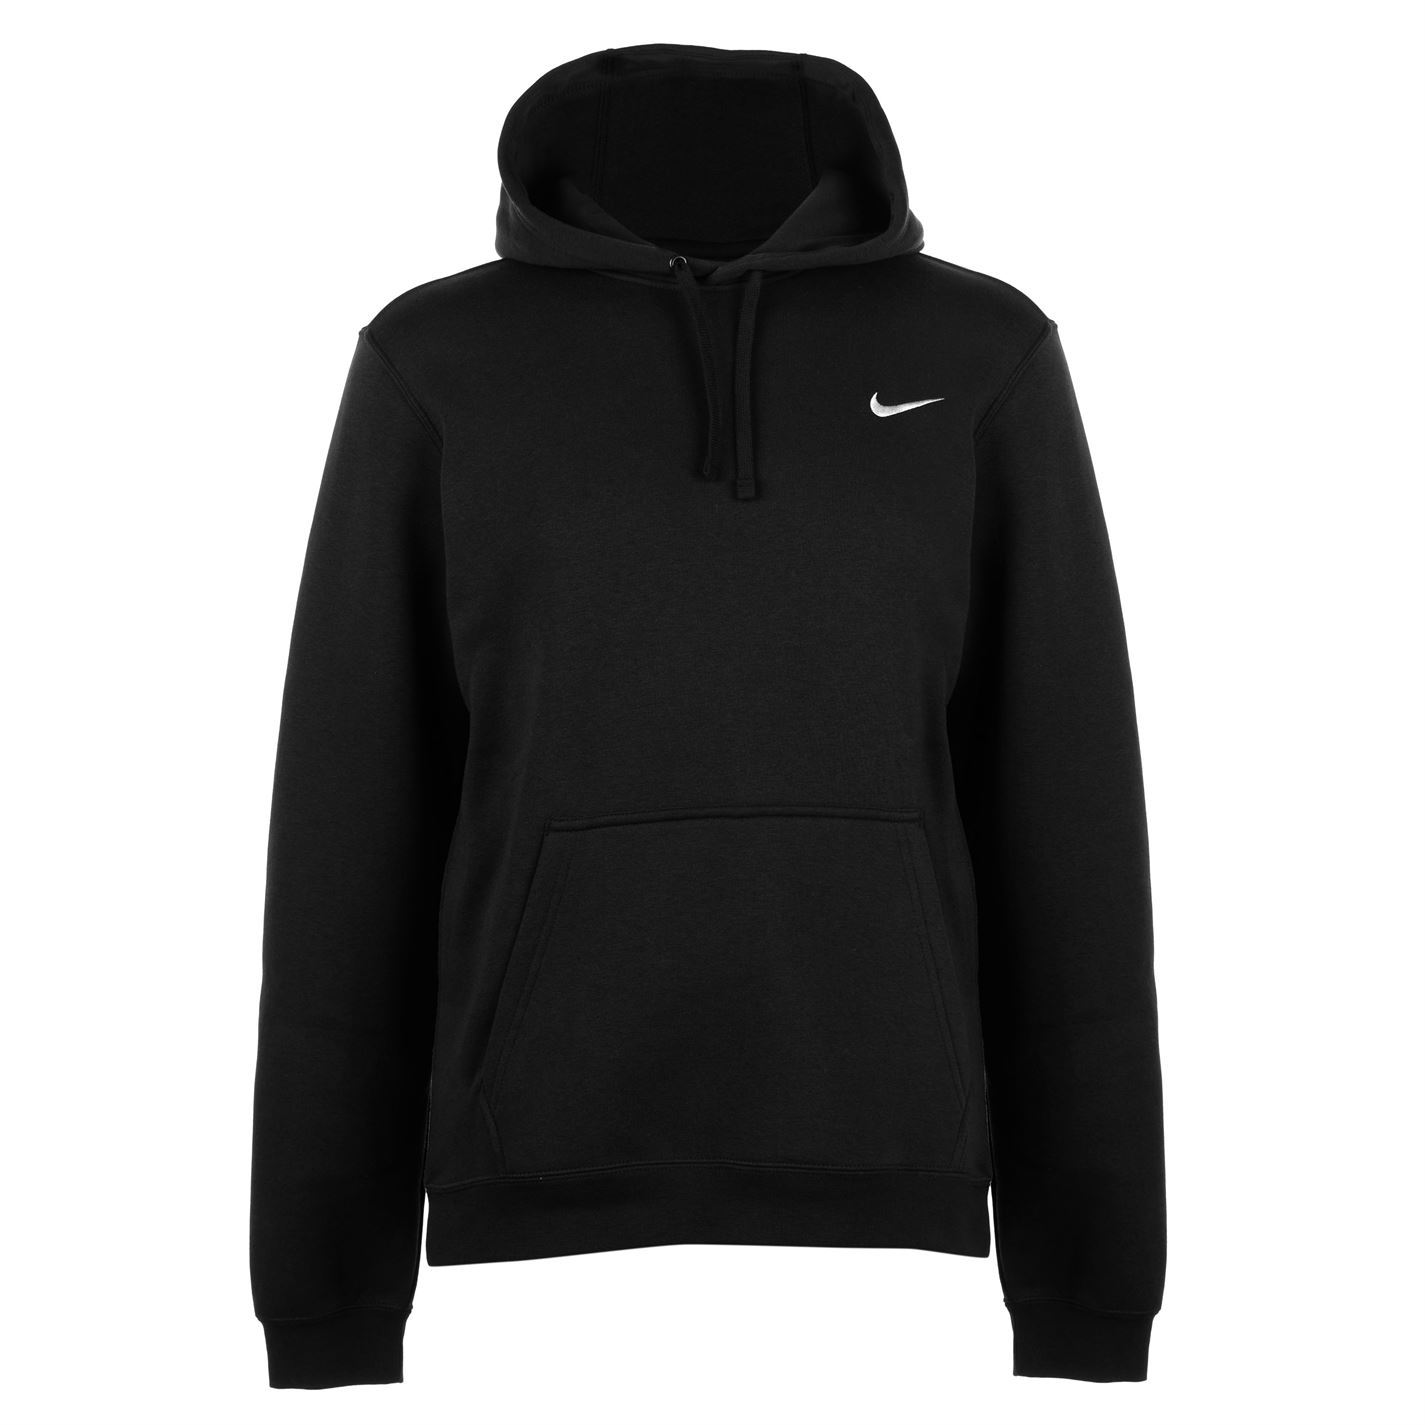 Nike-Fundamentals-Fleece-Lined-Pullover-Hoody-Mens-OTH-Hoodie-Sweatshirt-Sweater thumbnail 4